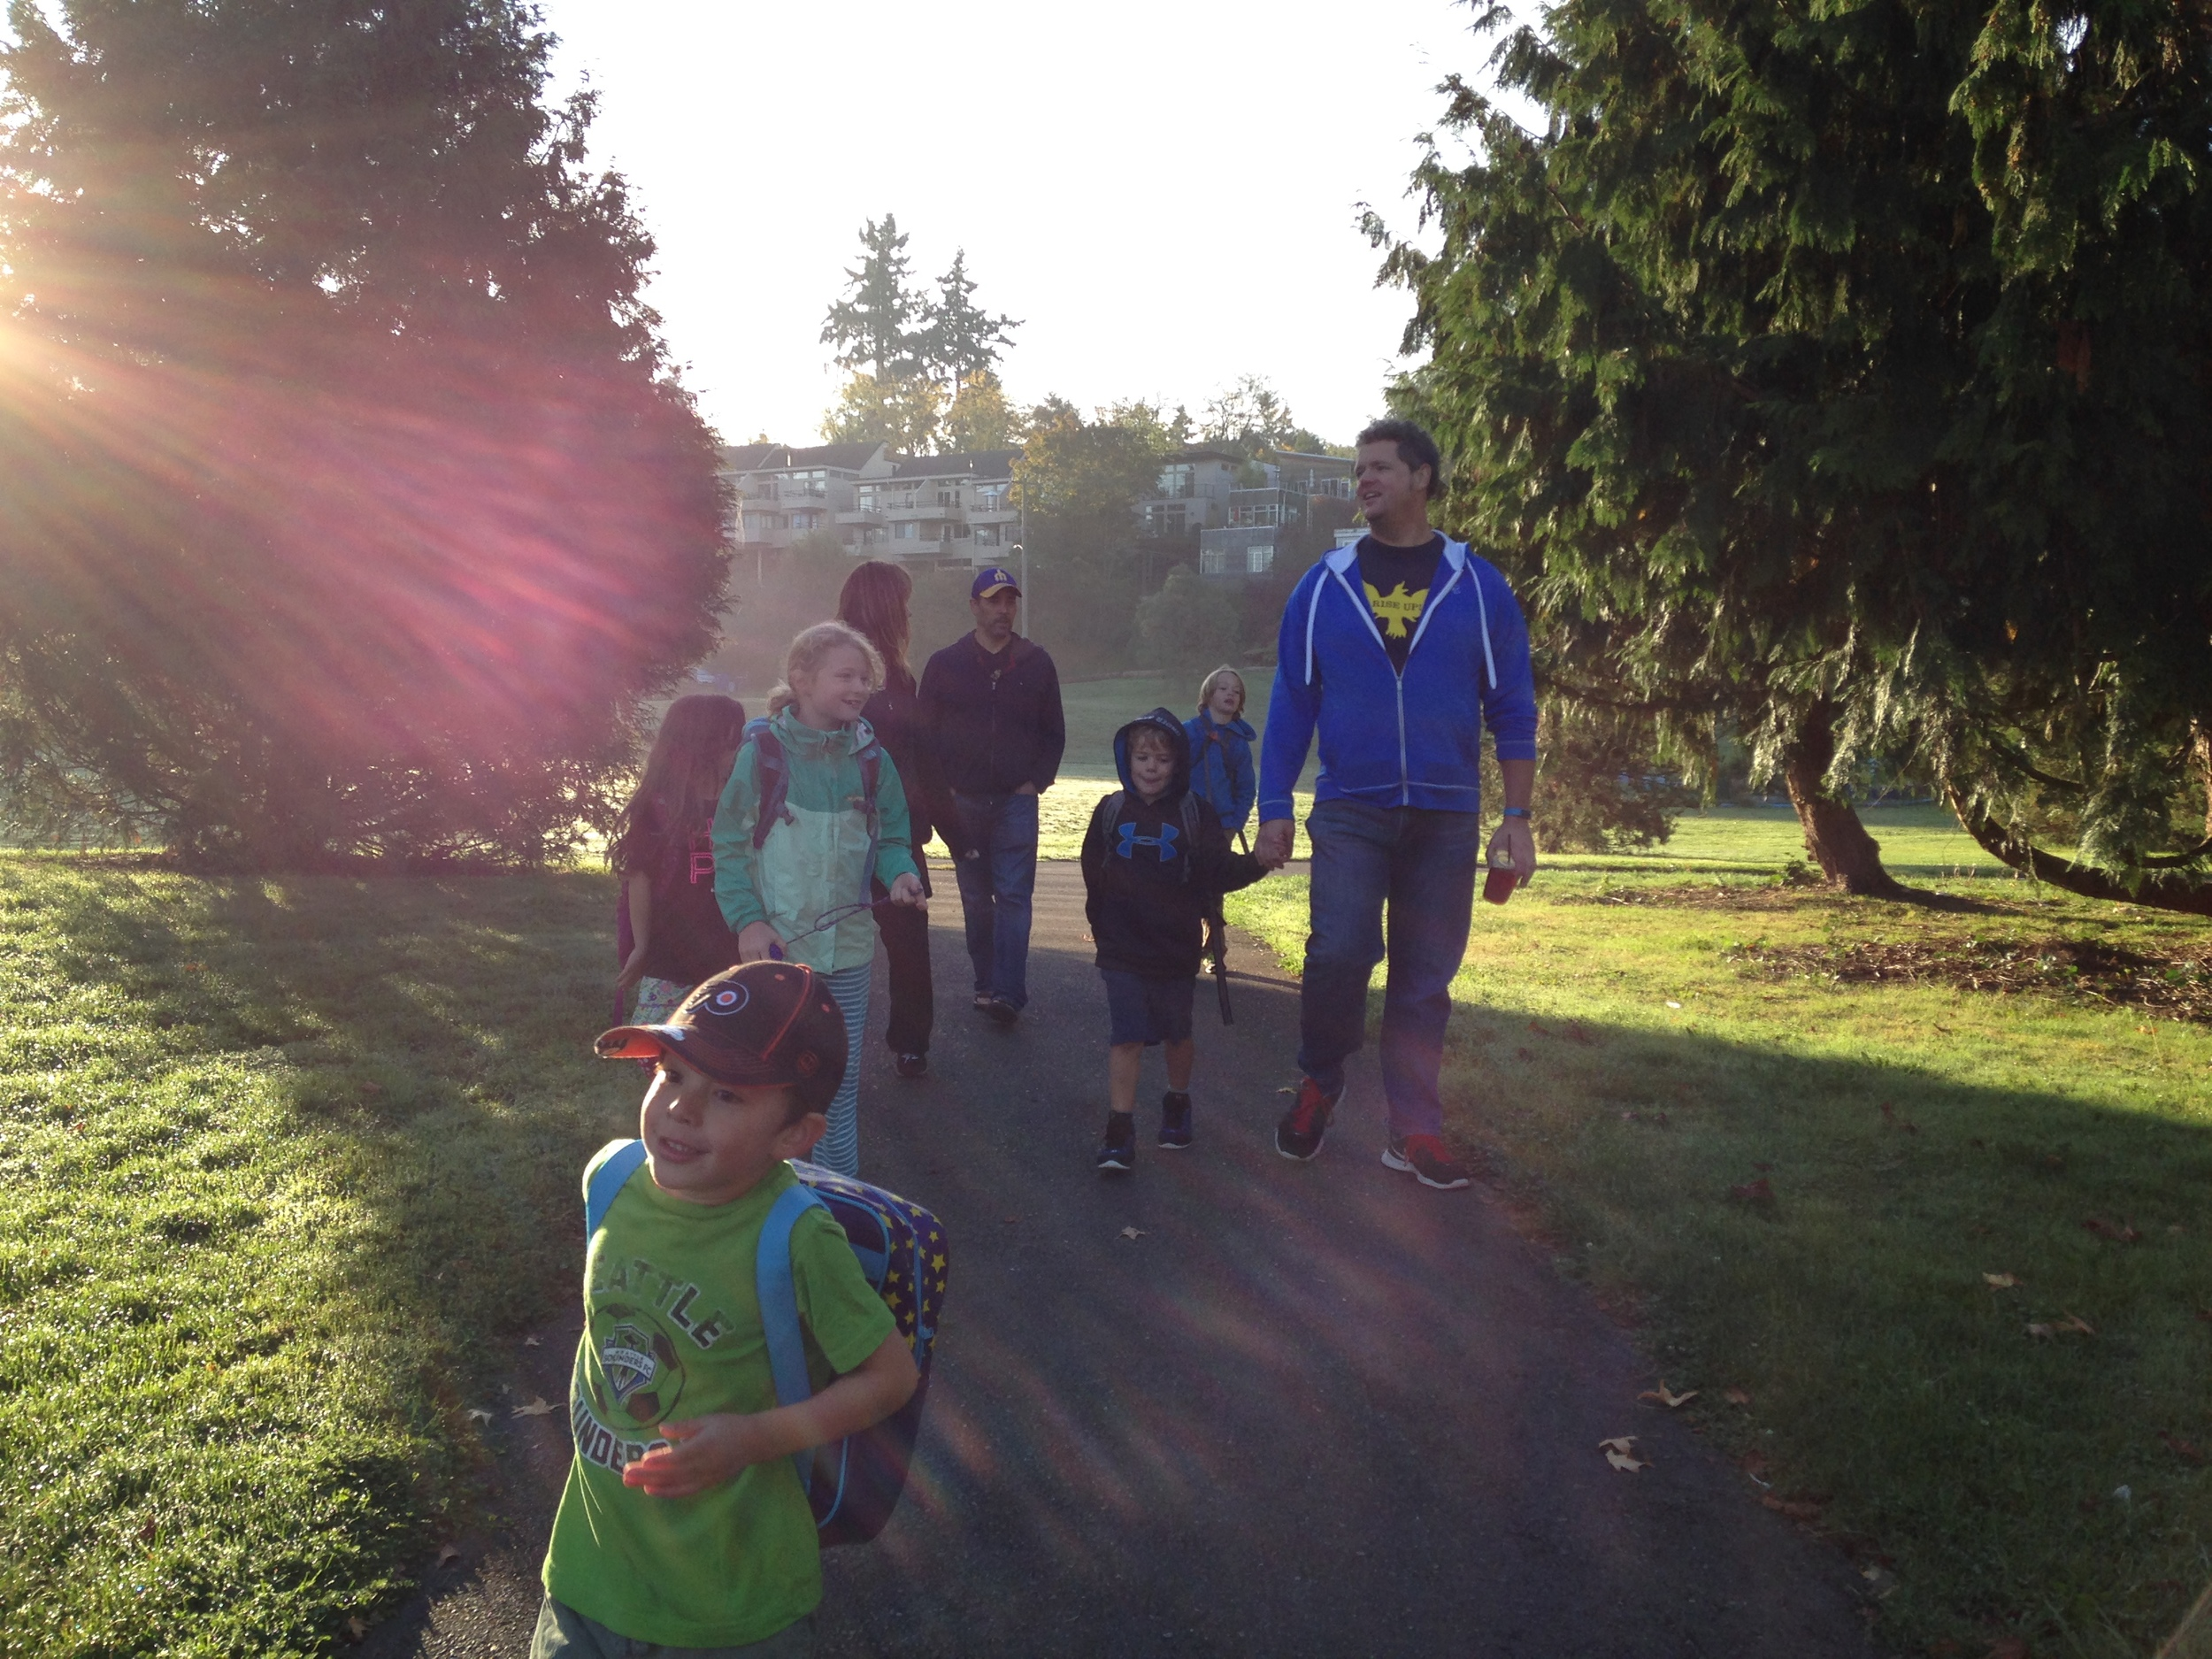 A few families take in some bright fall sunshine on a 15-minute walk to from Empire Espresso to Hawthorne.